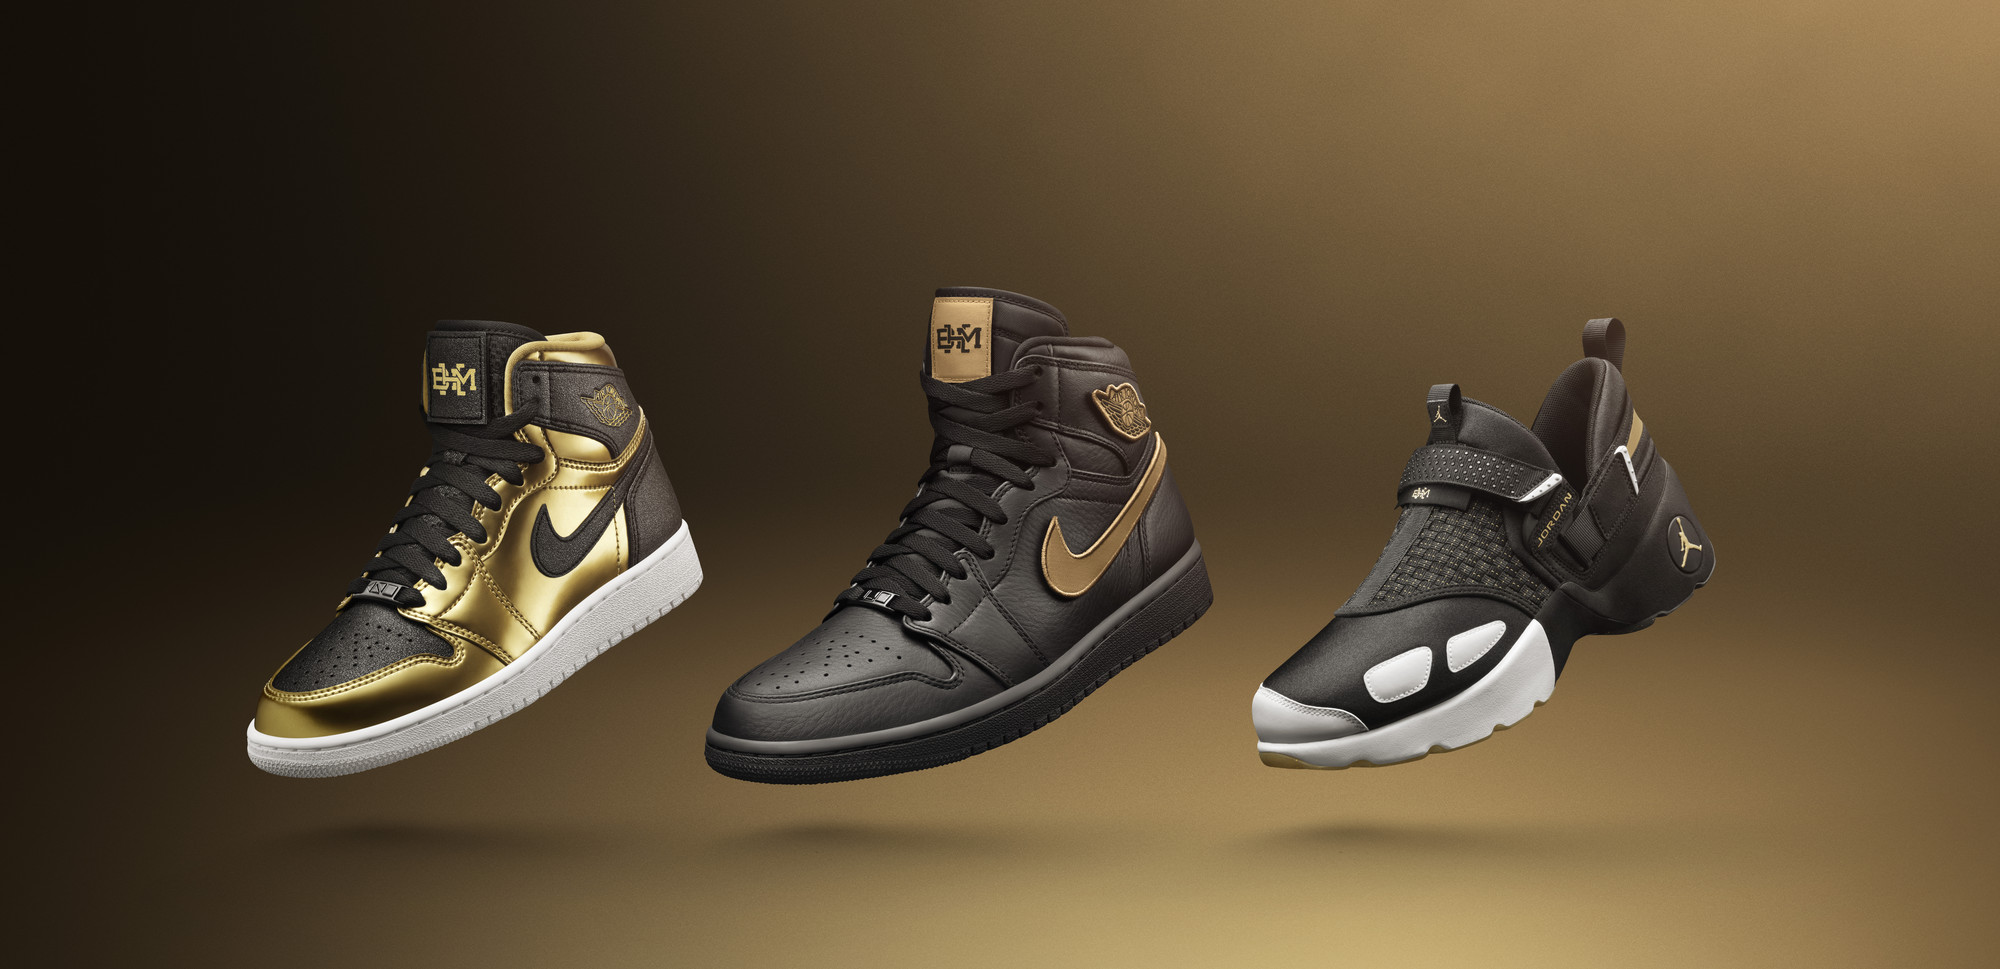 Nike and Jordan Brand's 10 Black History Month sneakers: A